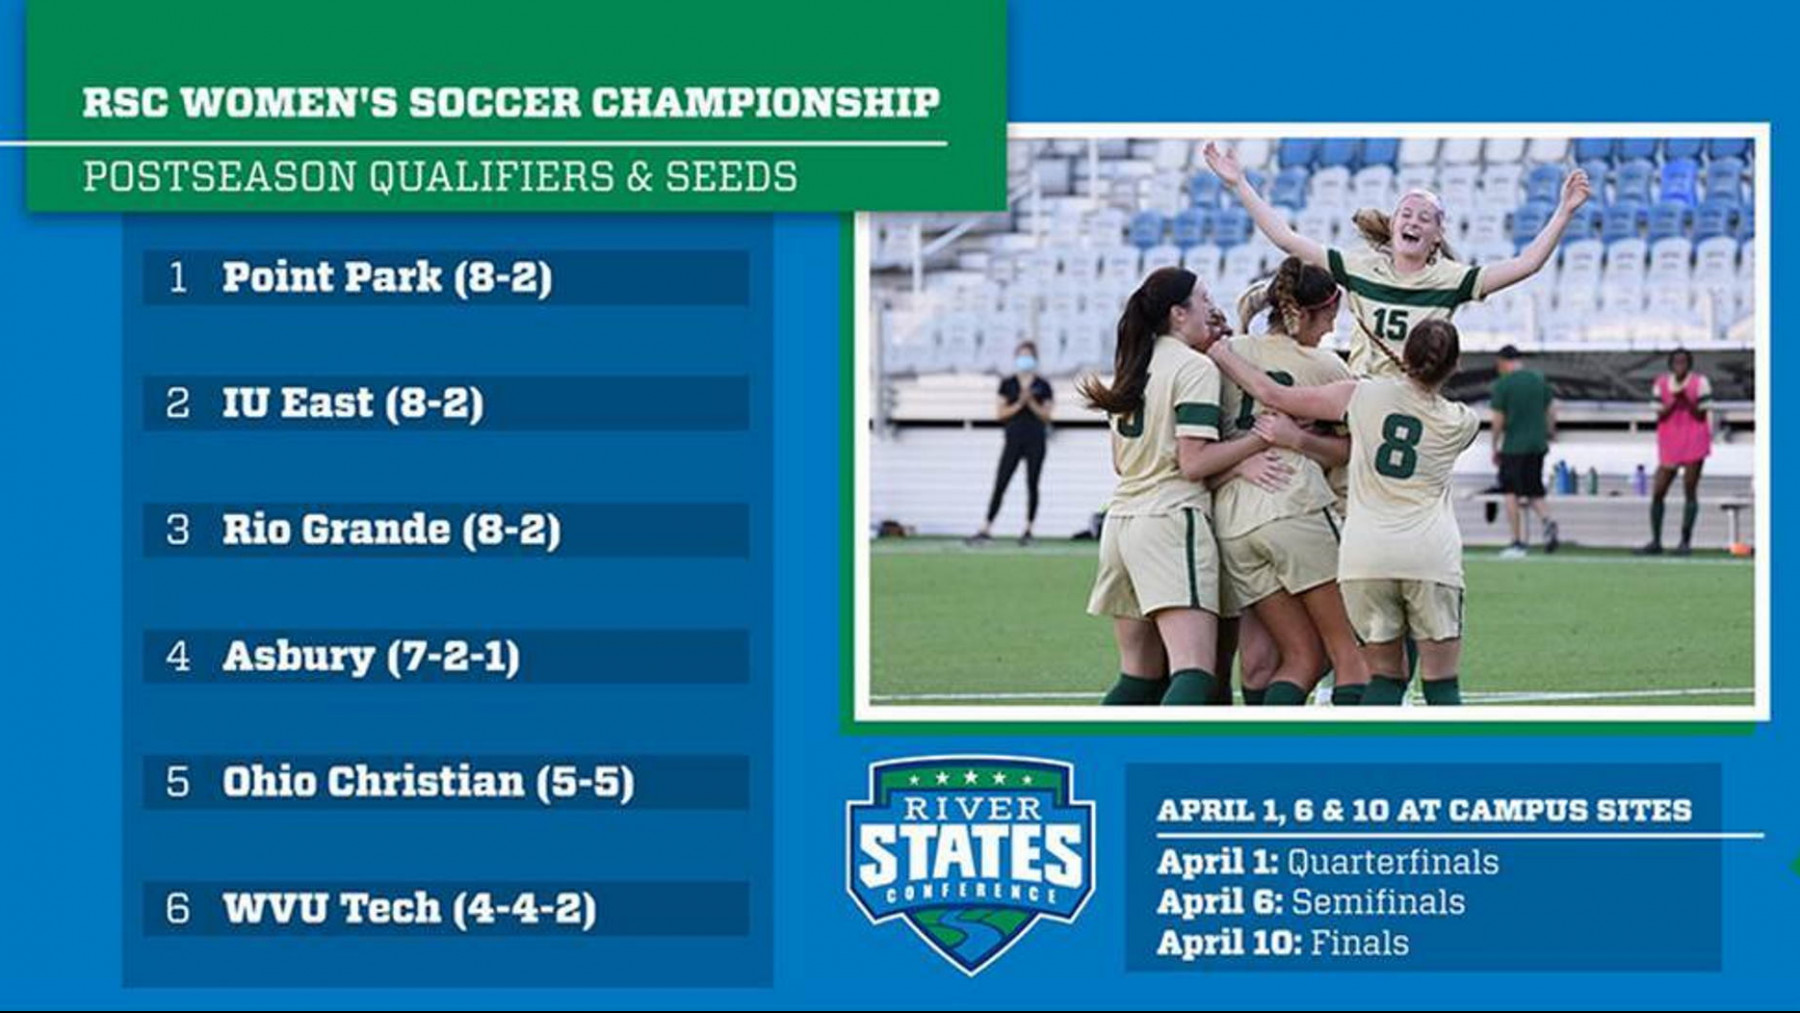 RSC Women's Soccer Championship Qualifiers & Bracket announced for April 1-10